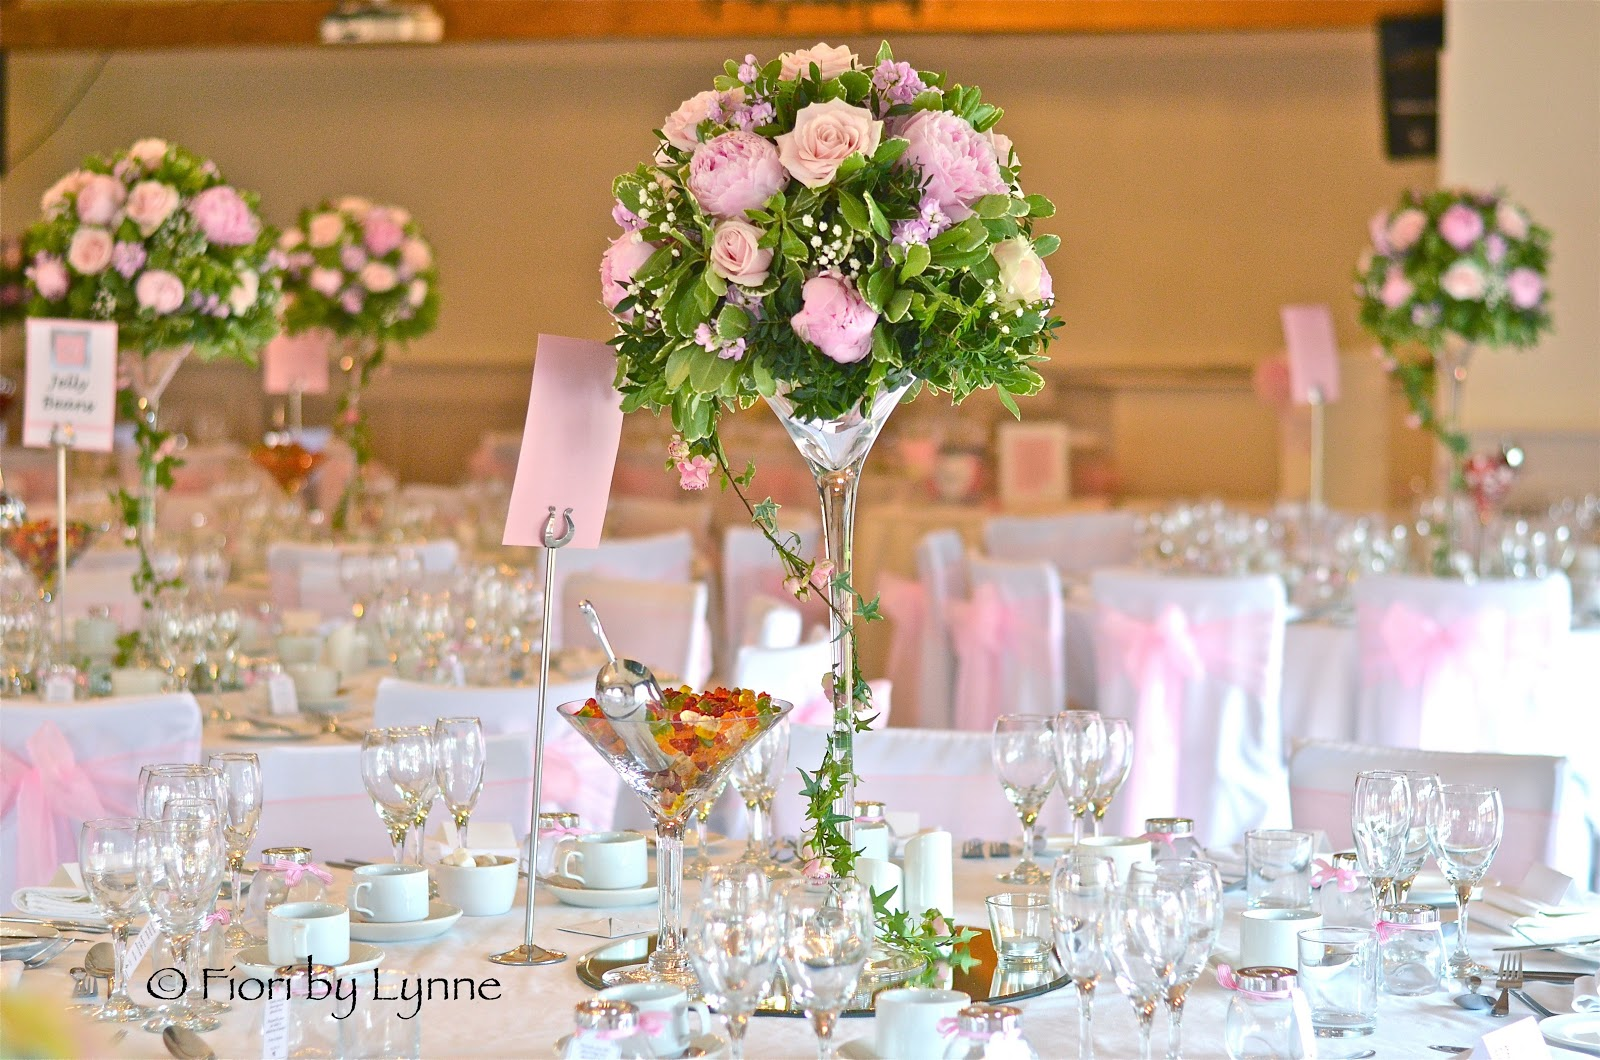 Wedding flowers blog helen 39 s vintage pink wedding flowers - Centre de table vase cylindrique ...